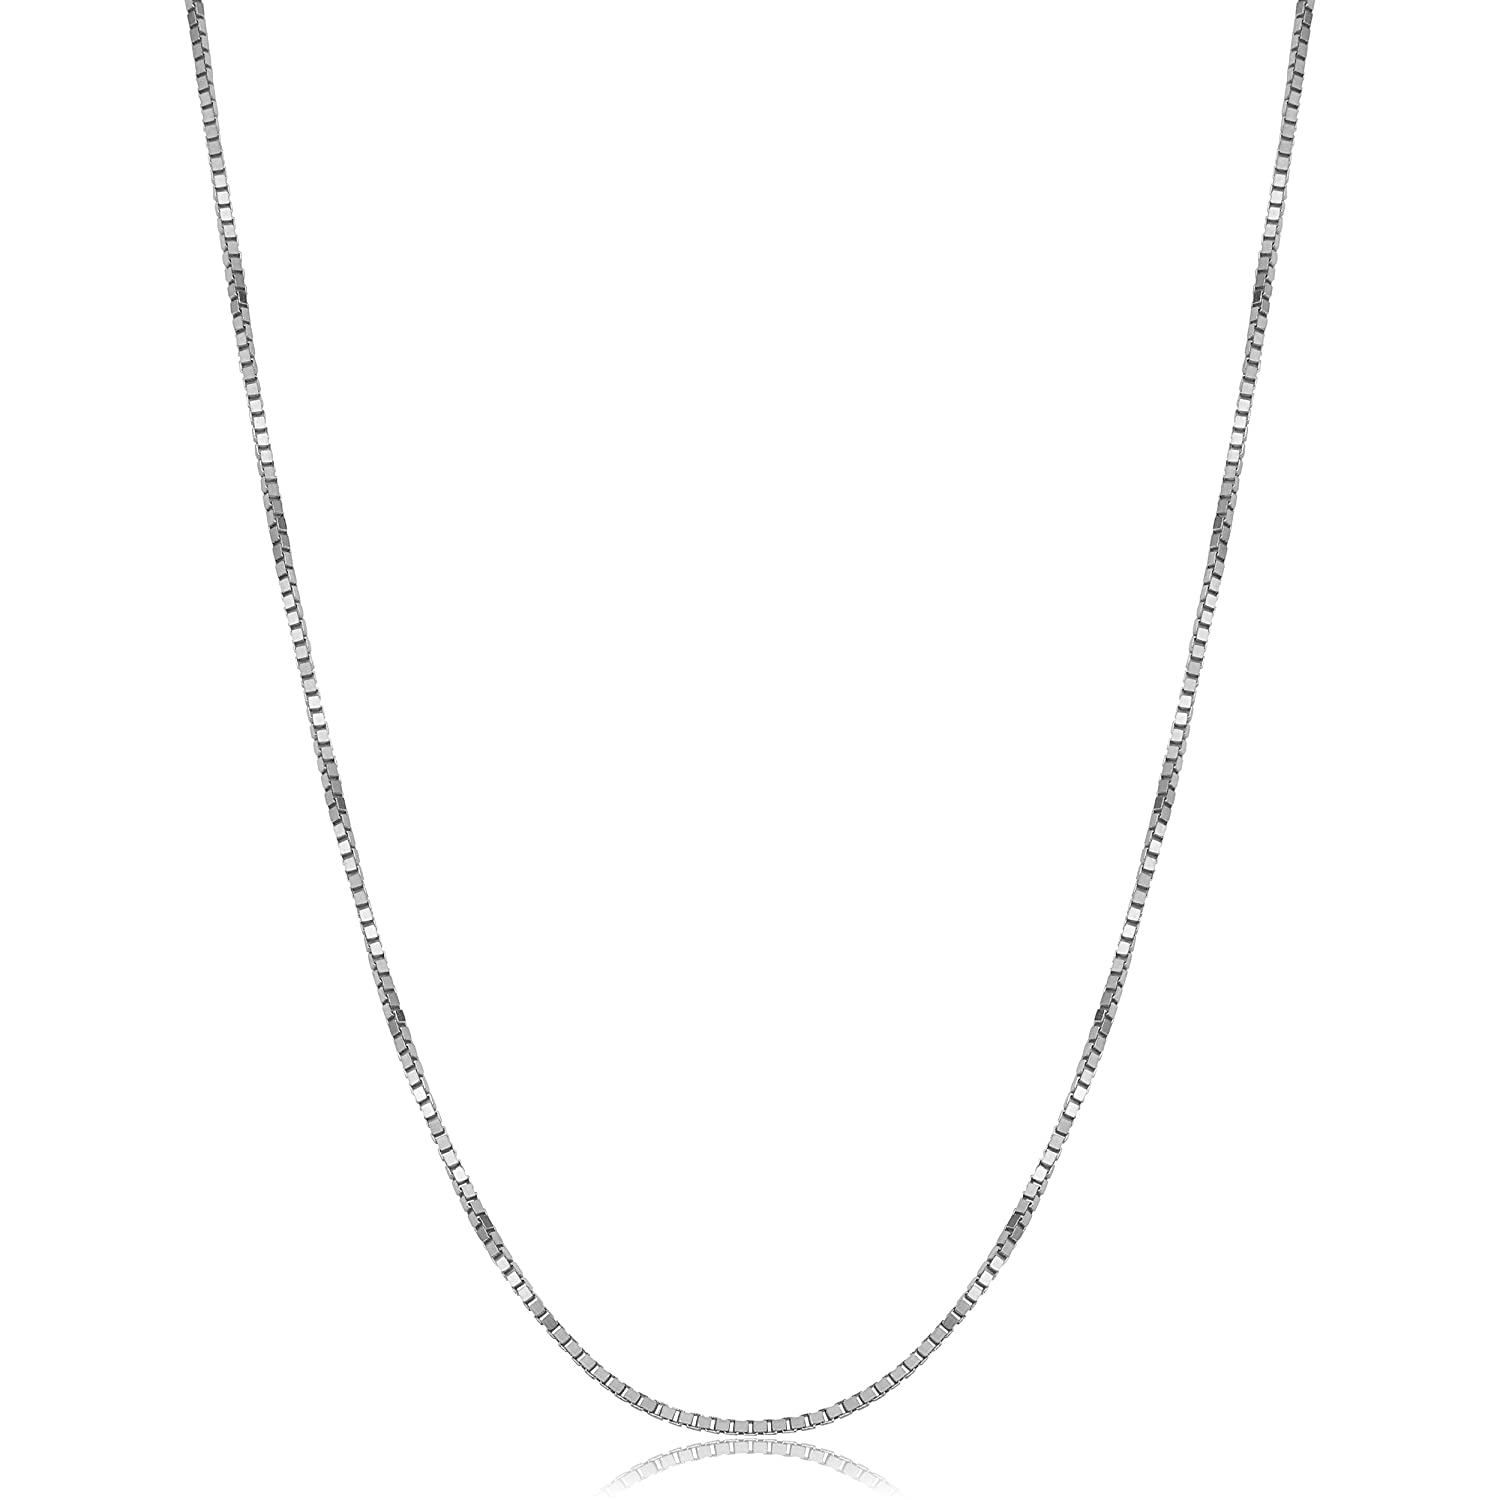 4642951f9a8f9 Kooljewelry 14k Solid White Gold 1 mm Venetian Box Chain Necklace (16, 18,  20, 22, 24 or 30 inch)